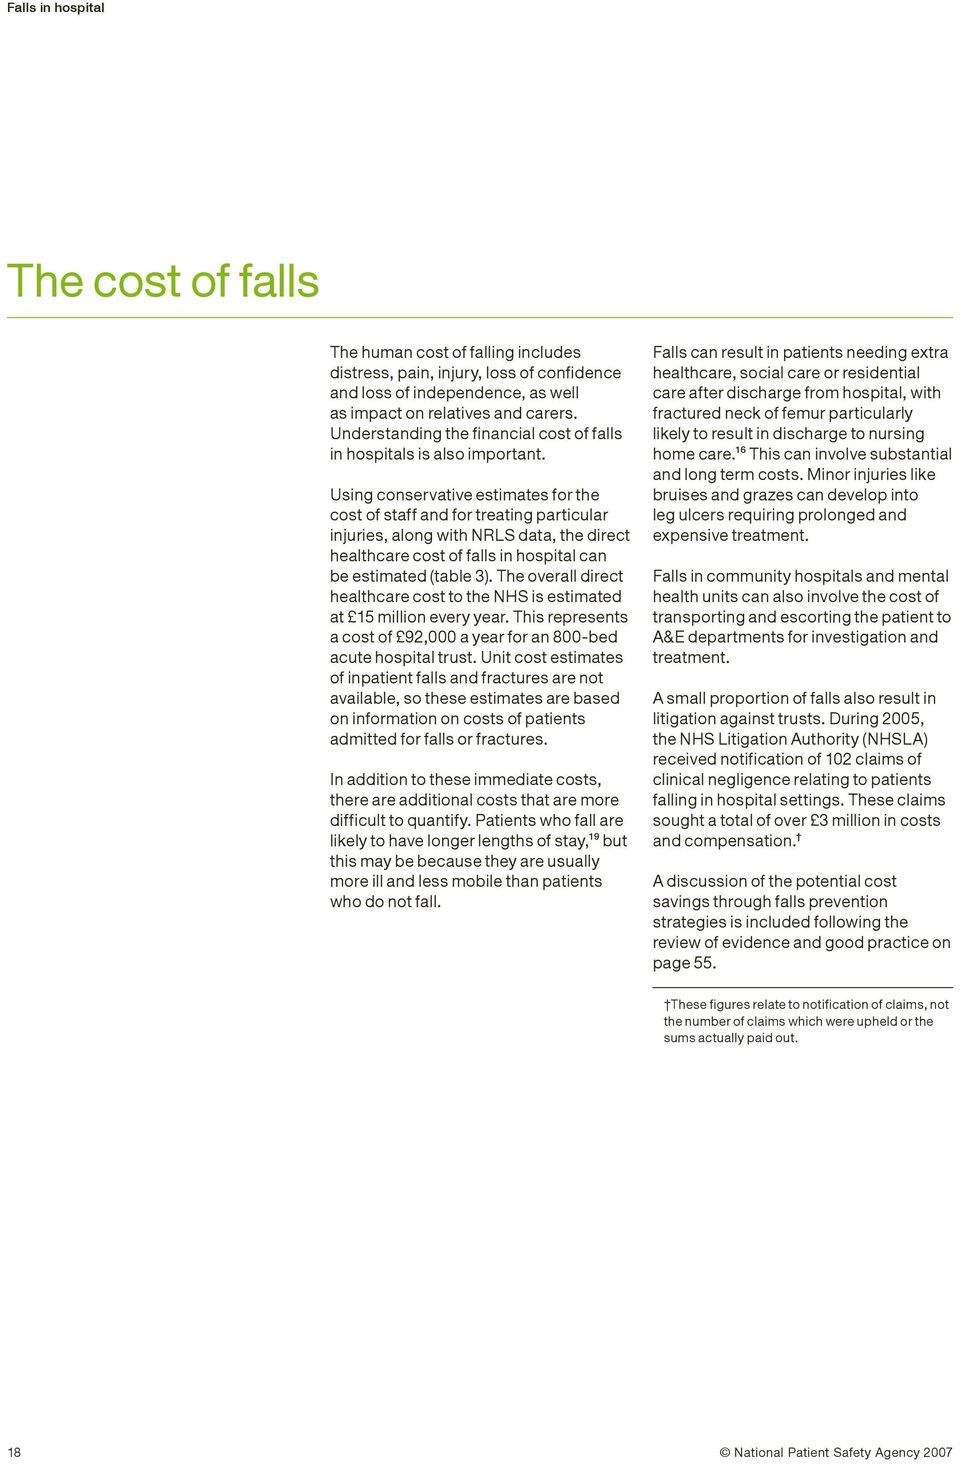 Using conservative estimates for the cost of staff and for treating particular injuries, along with NRLS data, the direct healthcare cost of falls in hospital can be estimated (table 3).